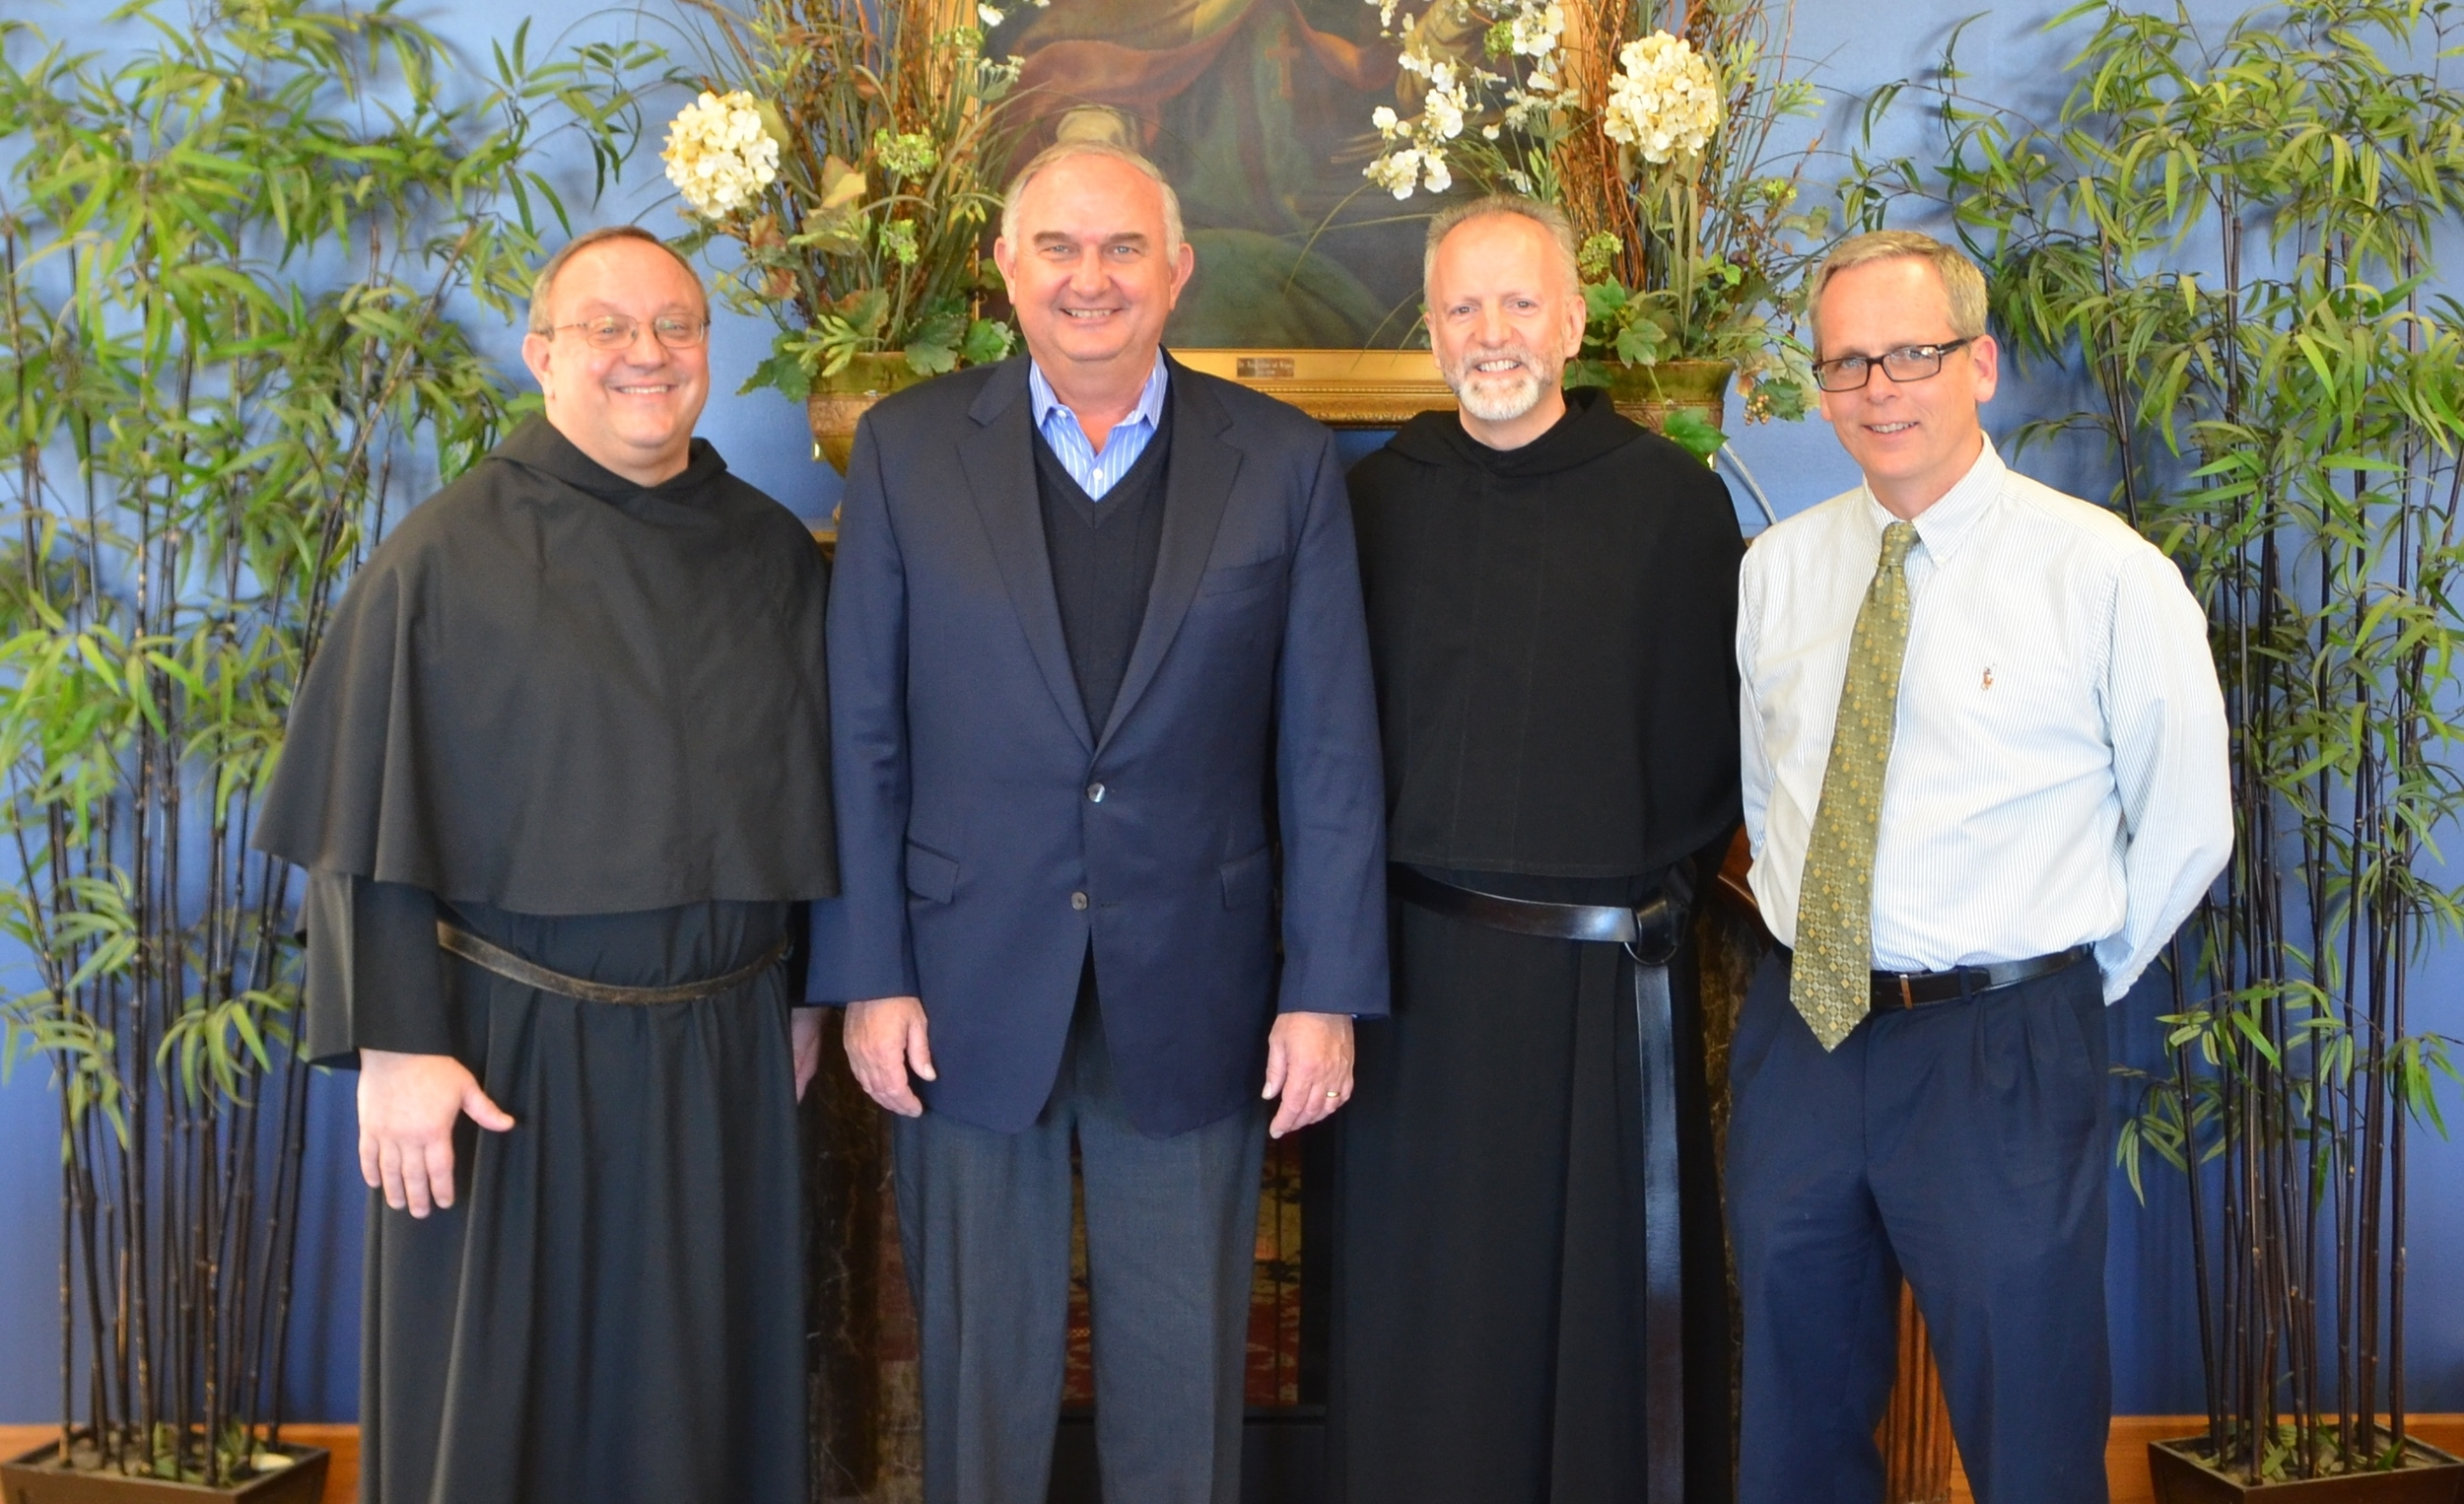 The Saint Rita of Cascia High School Leadership Team, from left: the Very Rev. Bernard C. Scianna, O.S.A., Ph.D. (Chairman of the Board) ; Ernie Mrozek  (President) ; the Rev. Stephen Curry, O.S.A., Ed.D. (Director of Augustinian Mission) ; and Brendan Conroy  (Principal)